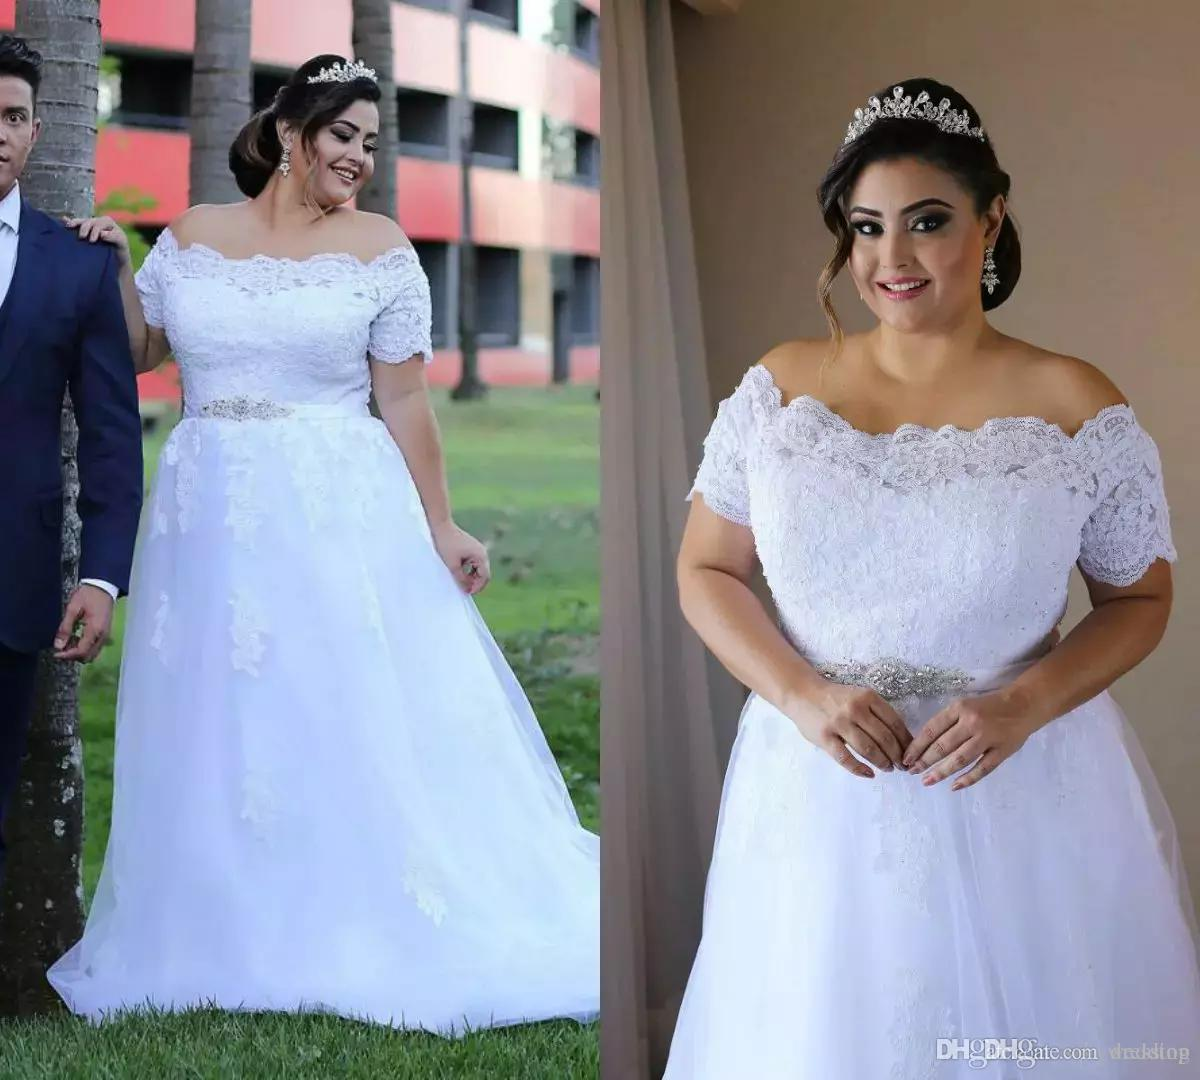 Wedding Gowns 2019 With Sleeves: Discount 2019 Elegant Plus Size Wedding Dresses With Belt